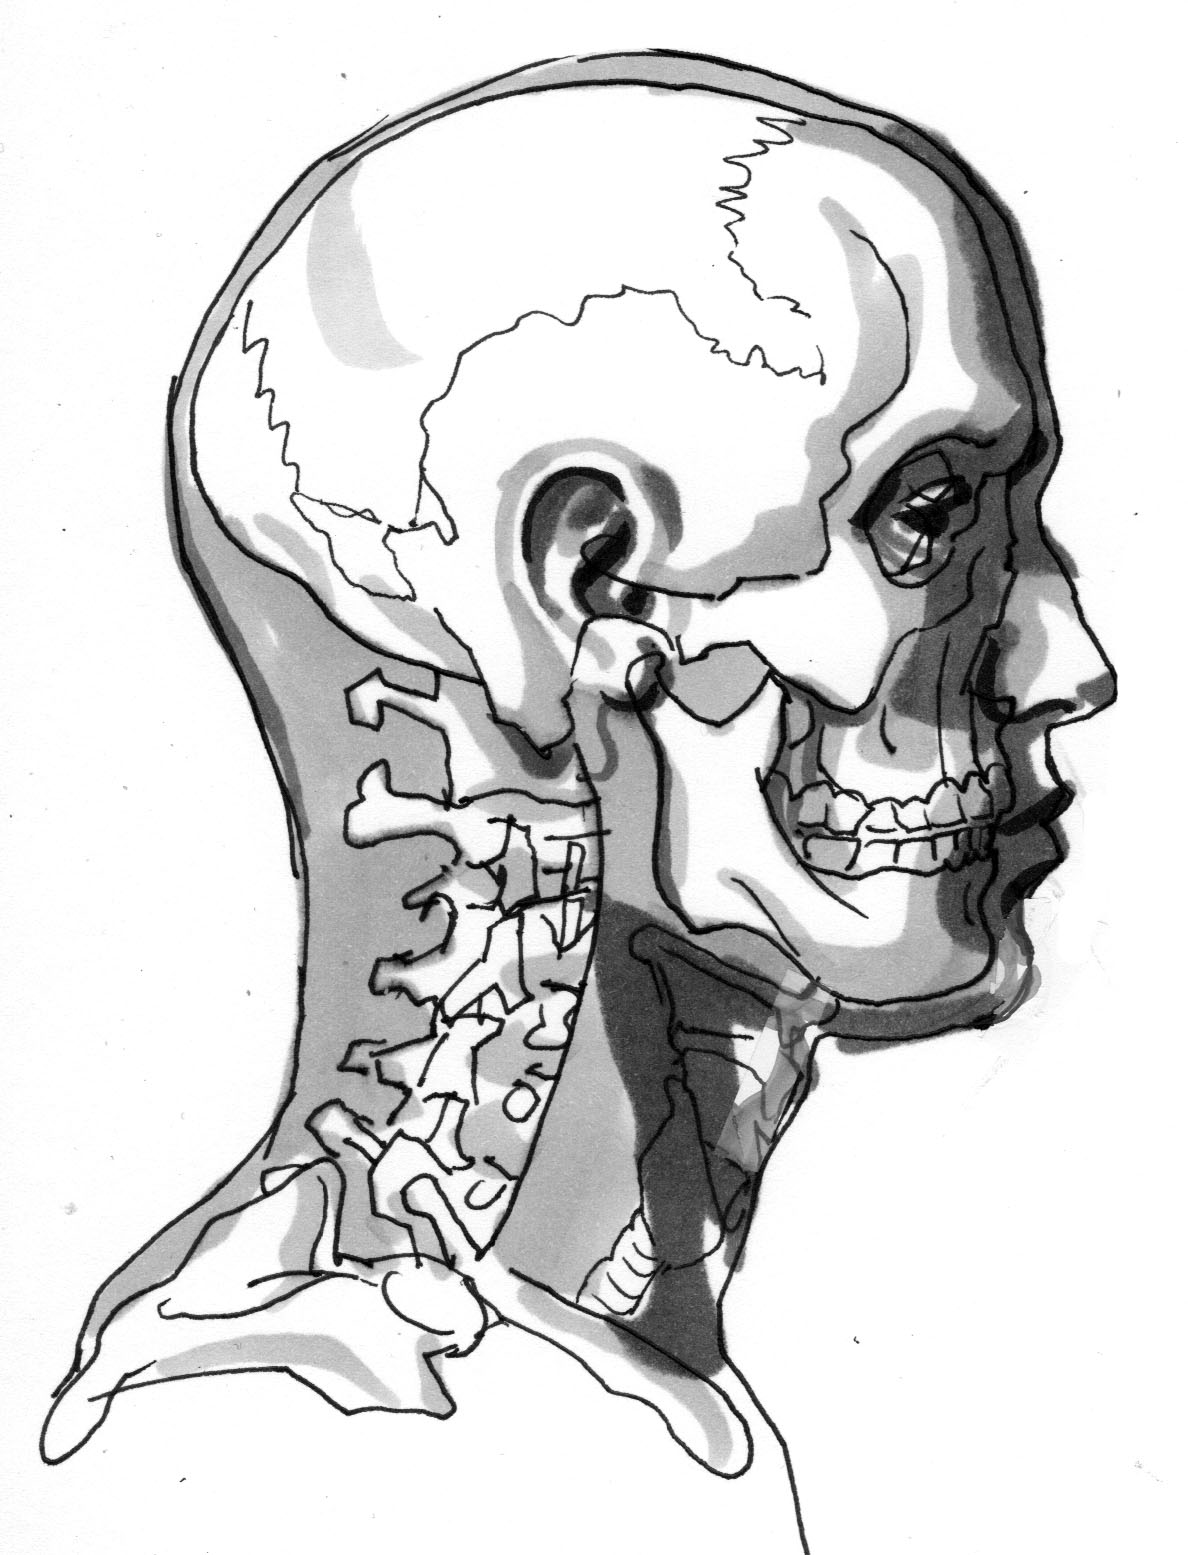 1188x1555 November Studies 4 Profile Skull With Flesh Jake Nelson Art